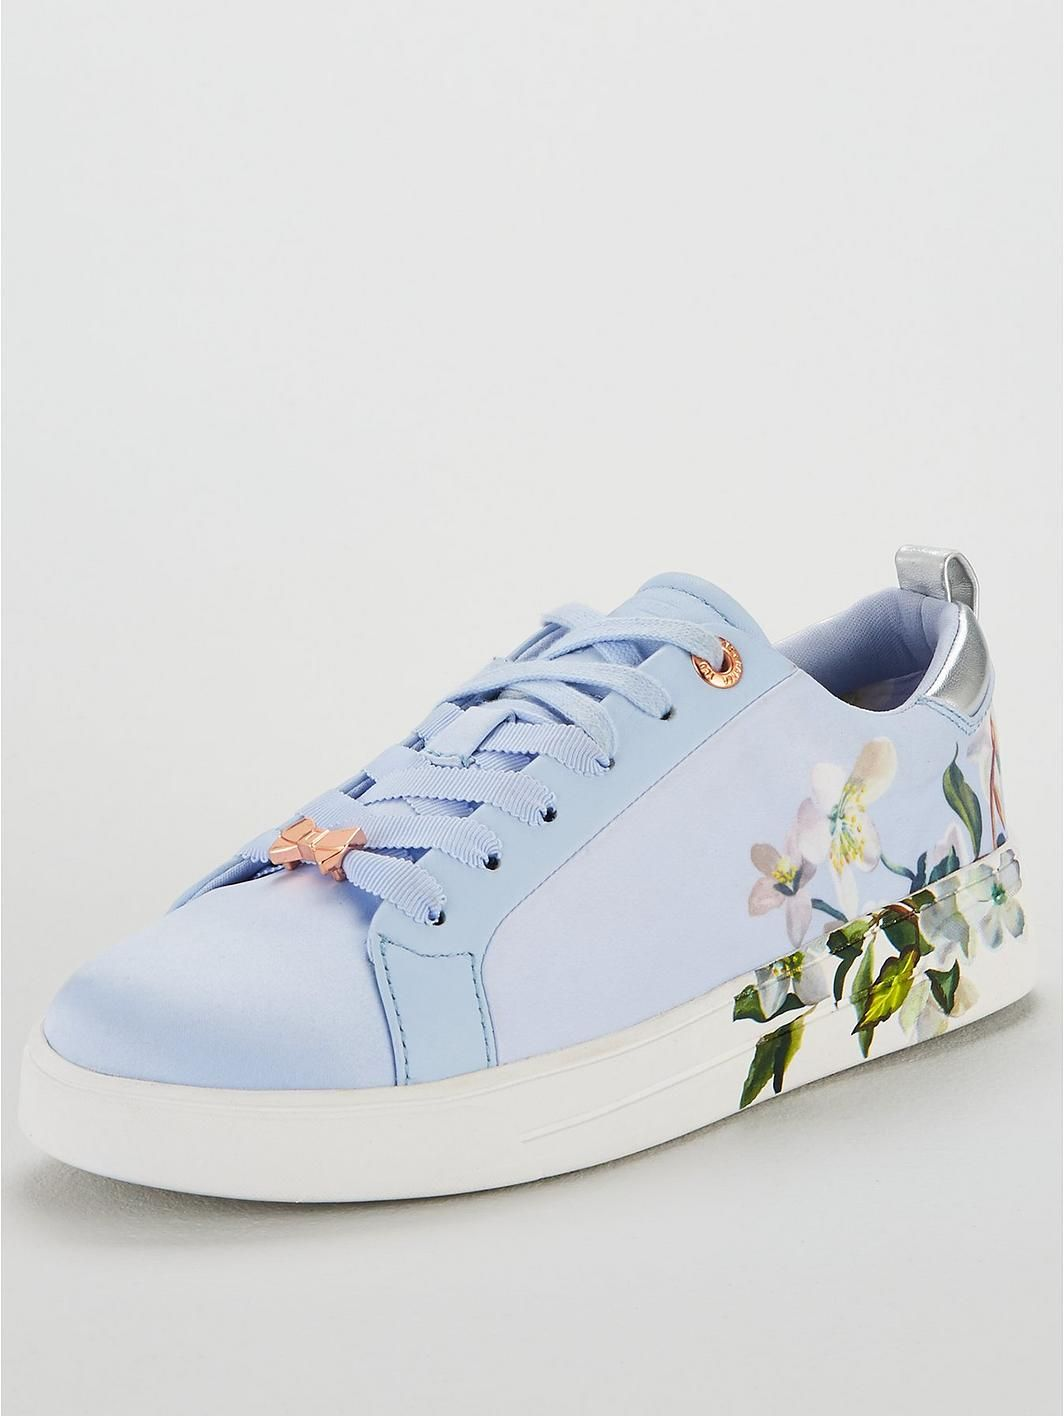 shoes, Ted baker shoes, Ted baker trainers